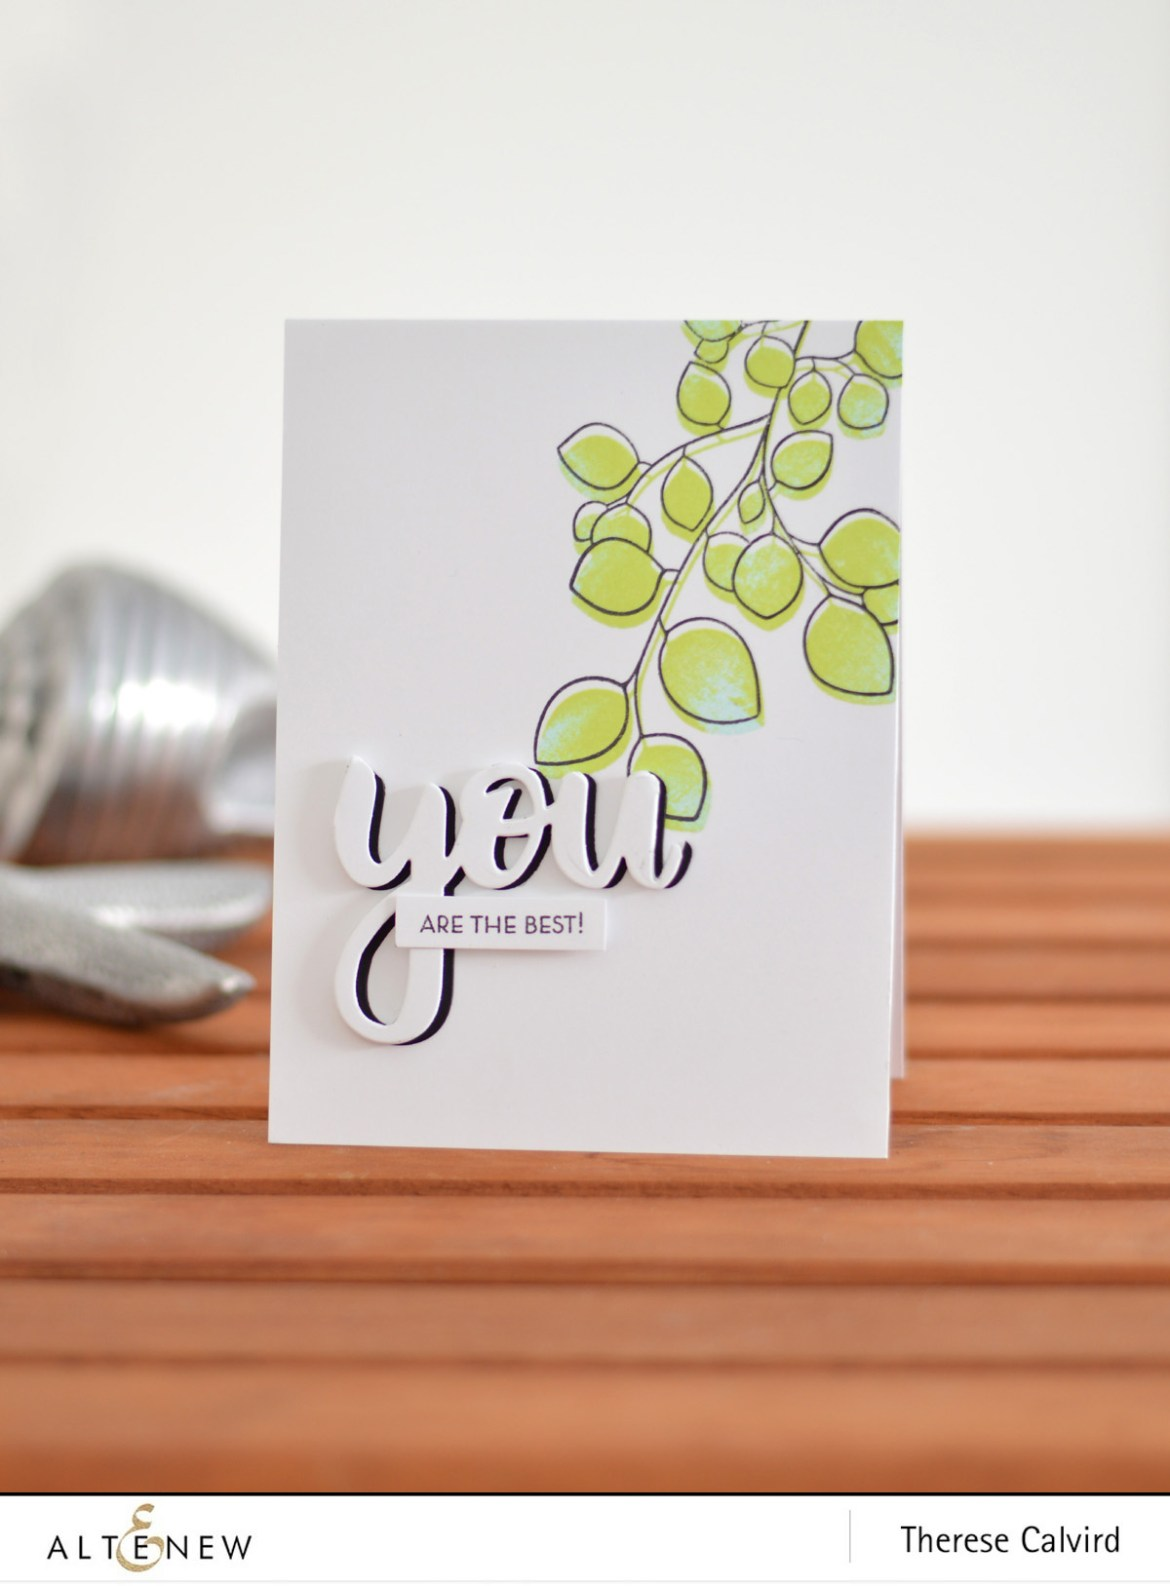 http://altenewblog.com/wp-content/uploads/2018/06/Altenew-Leaf-Canopy-Thinking-of-You-Therese-Calvird-card-video-1-copy.jpg